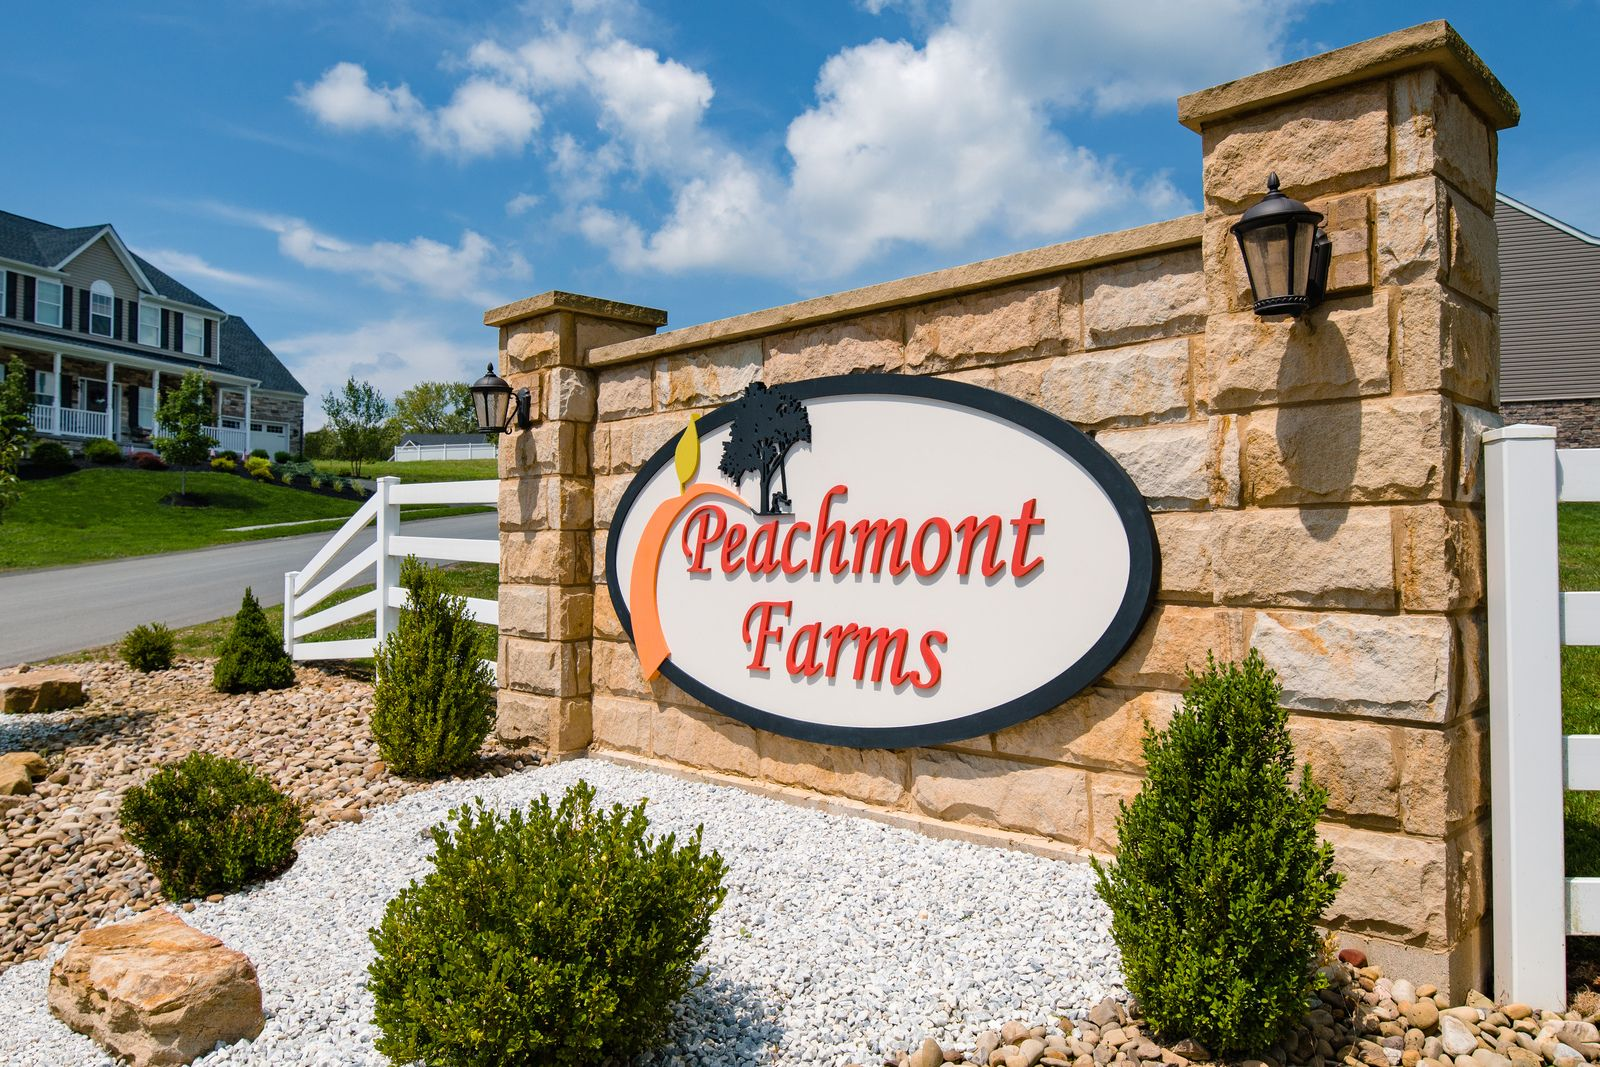 RANCH OR COLONIAL—THE CHOICE IS YOURS:With a variety of floorplans, Peachmont Farms offers ranch and 2-story designs, the only decision is which do you prefer? Click here to schedule your appointment.